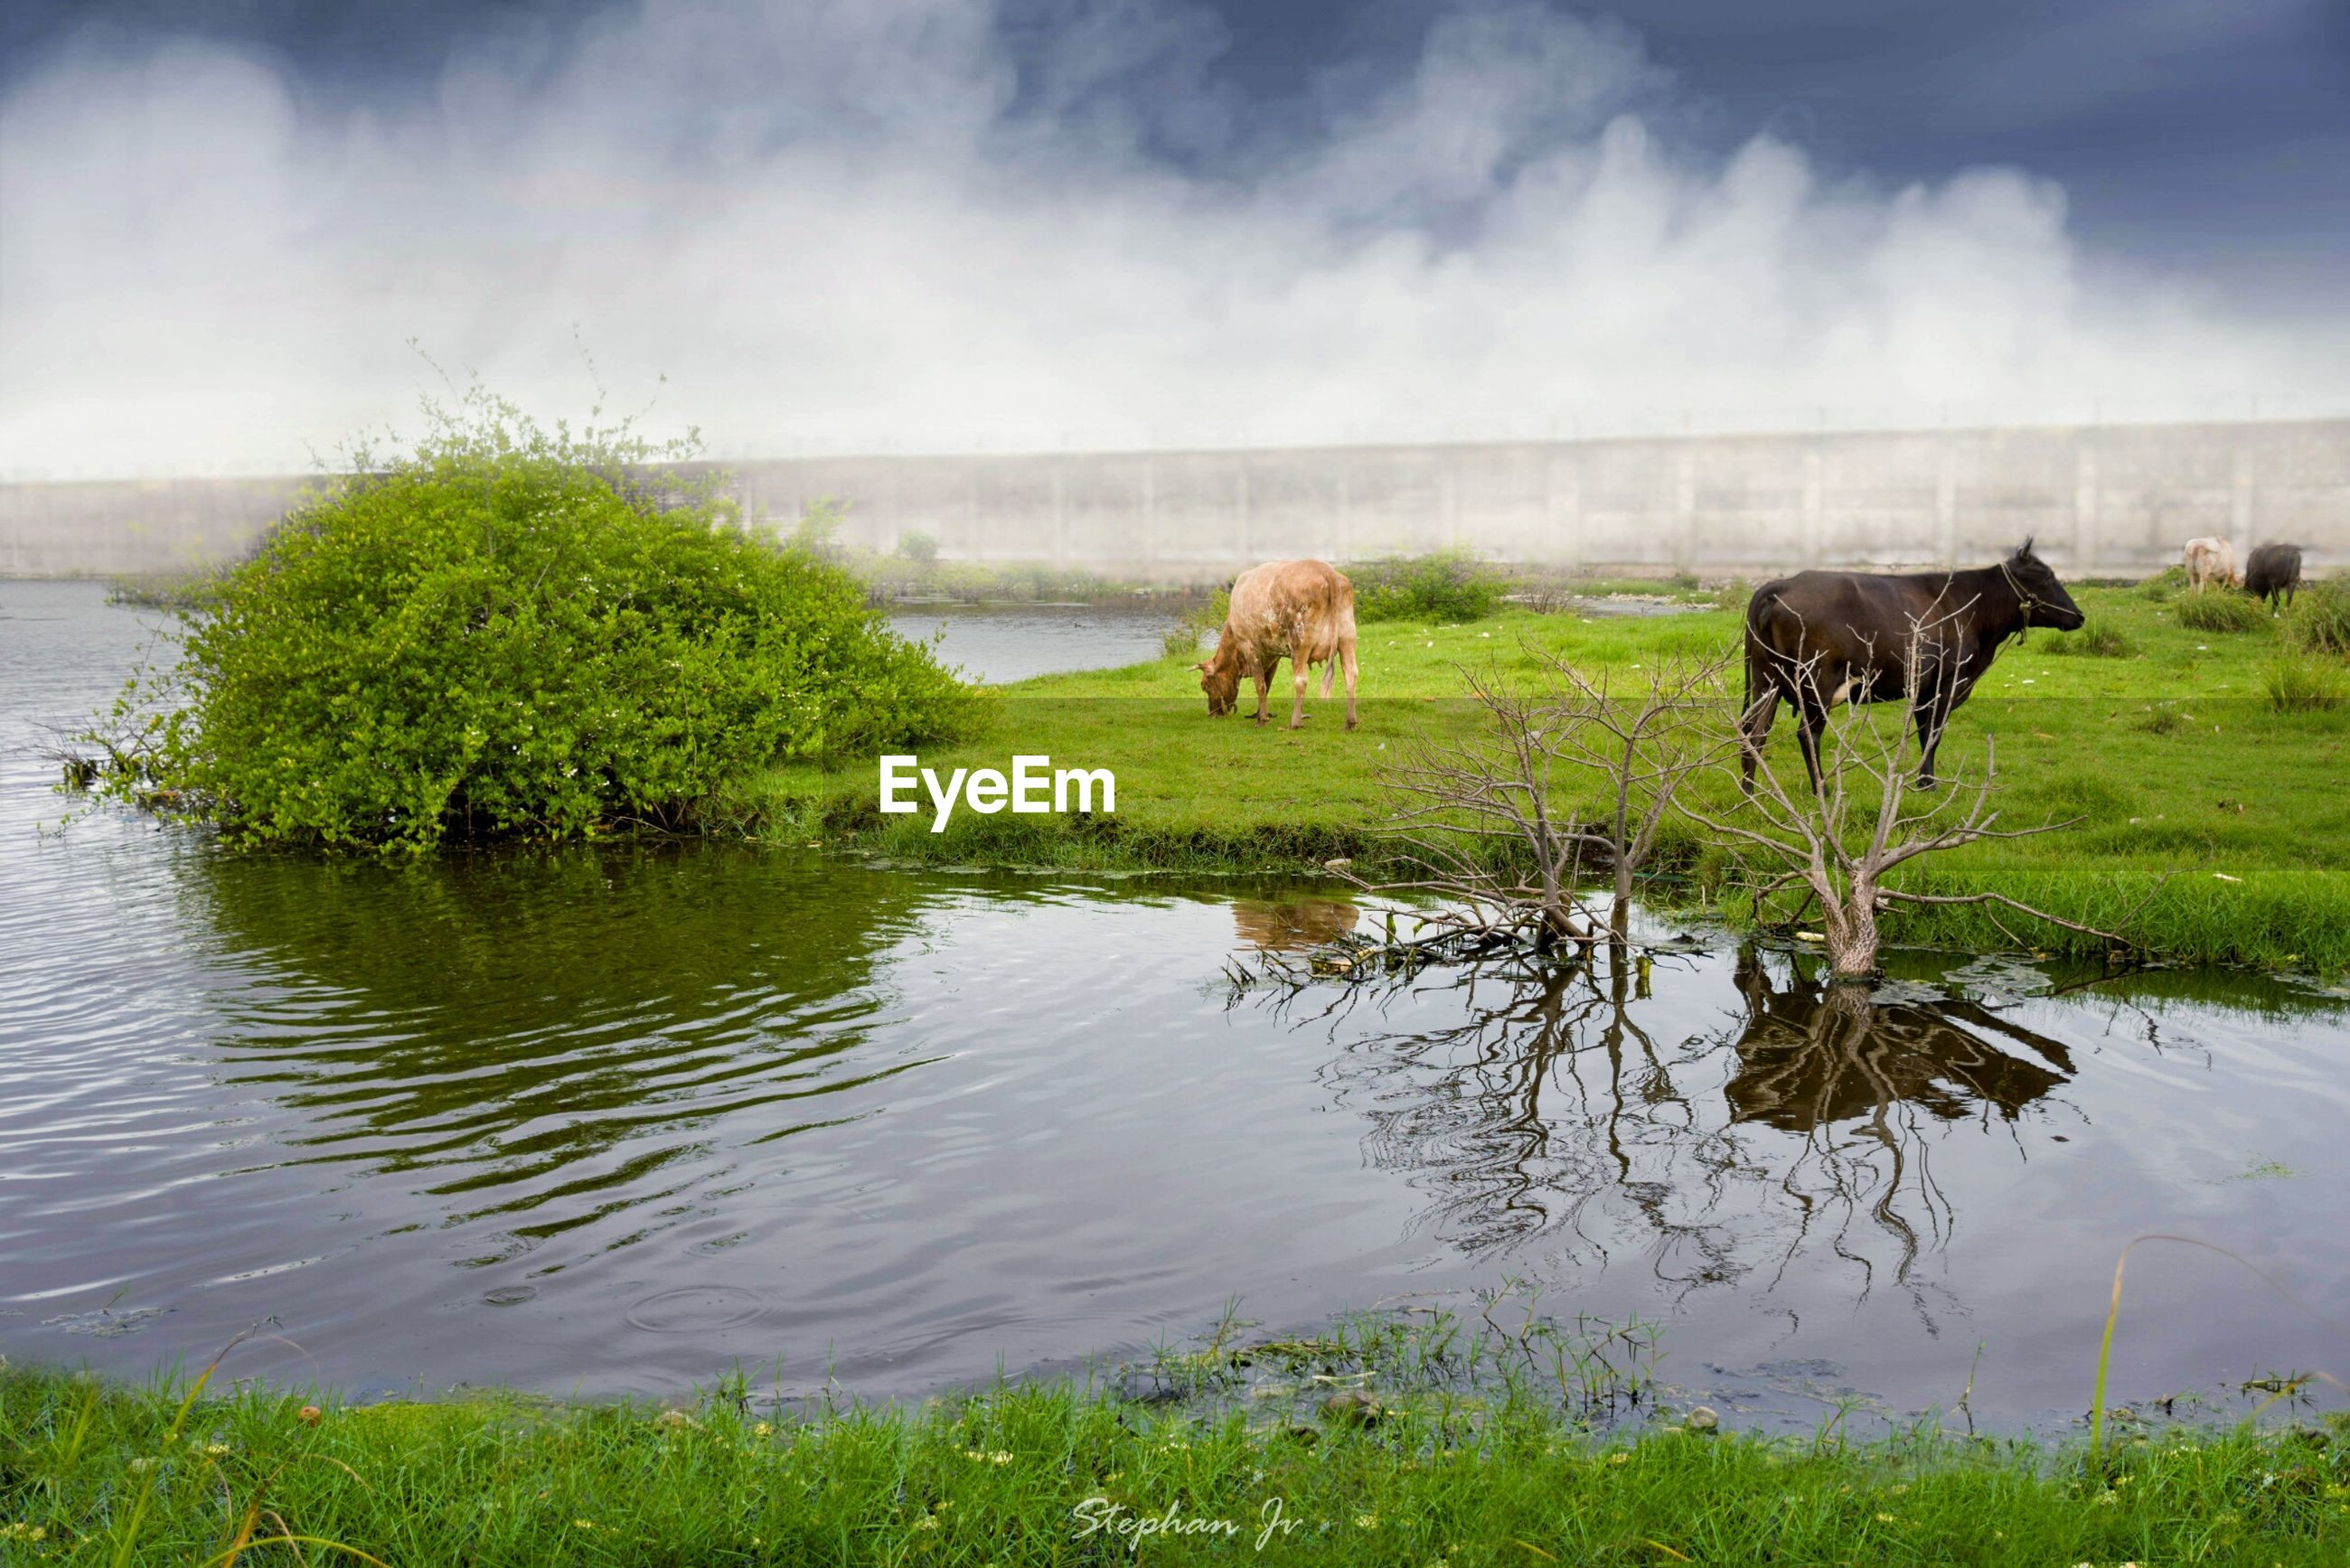 Cows on field by lake against cloudy sky